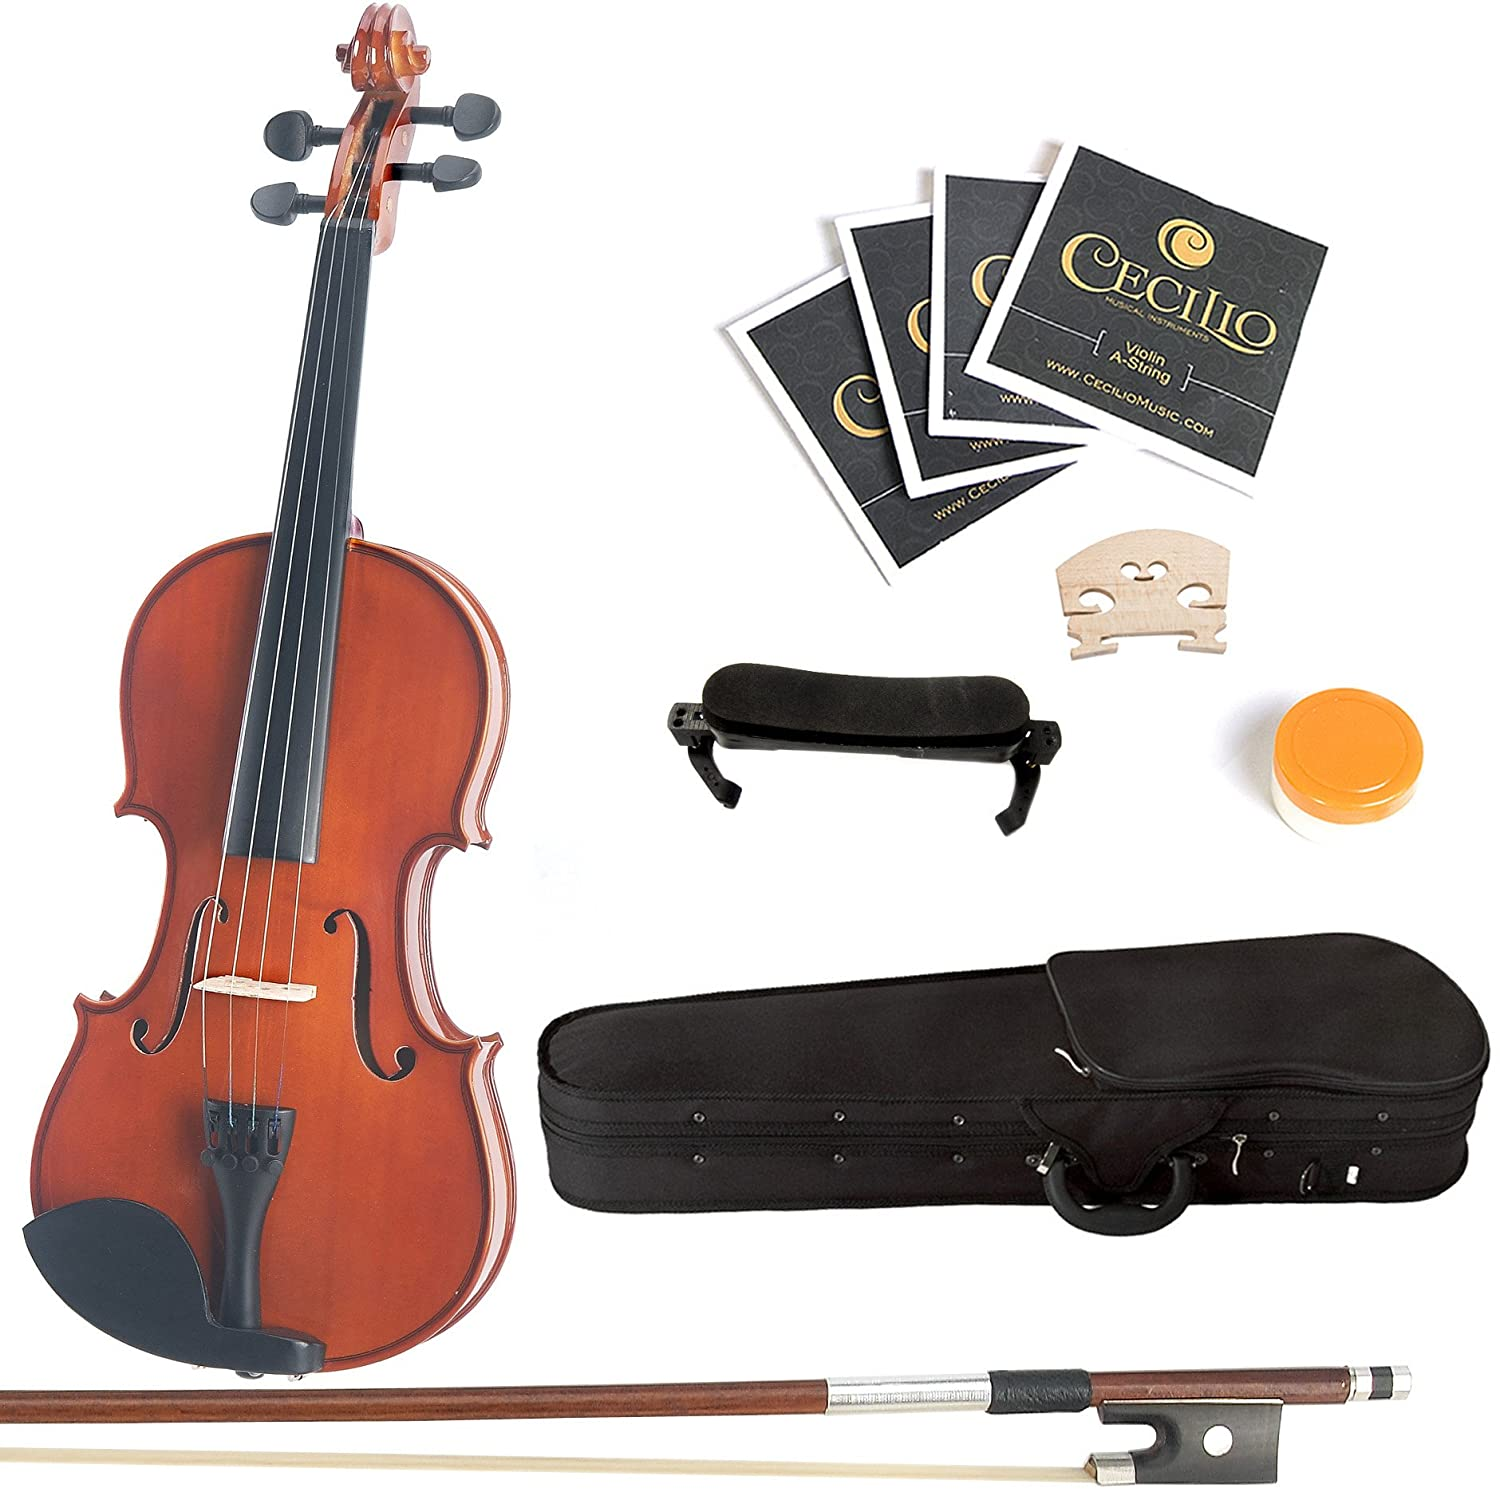 Mendini 1/4 MV200 Solid Wood Natural Varnish Violin with Hard Case, Shoulder Rest, Bow, Rosin and Extra Strings 1/4MV200